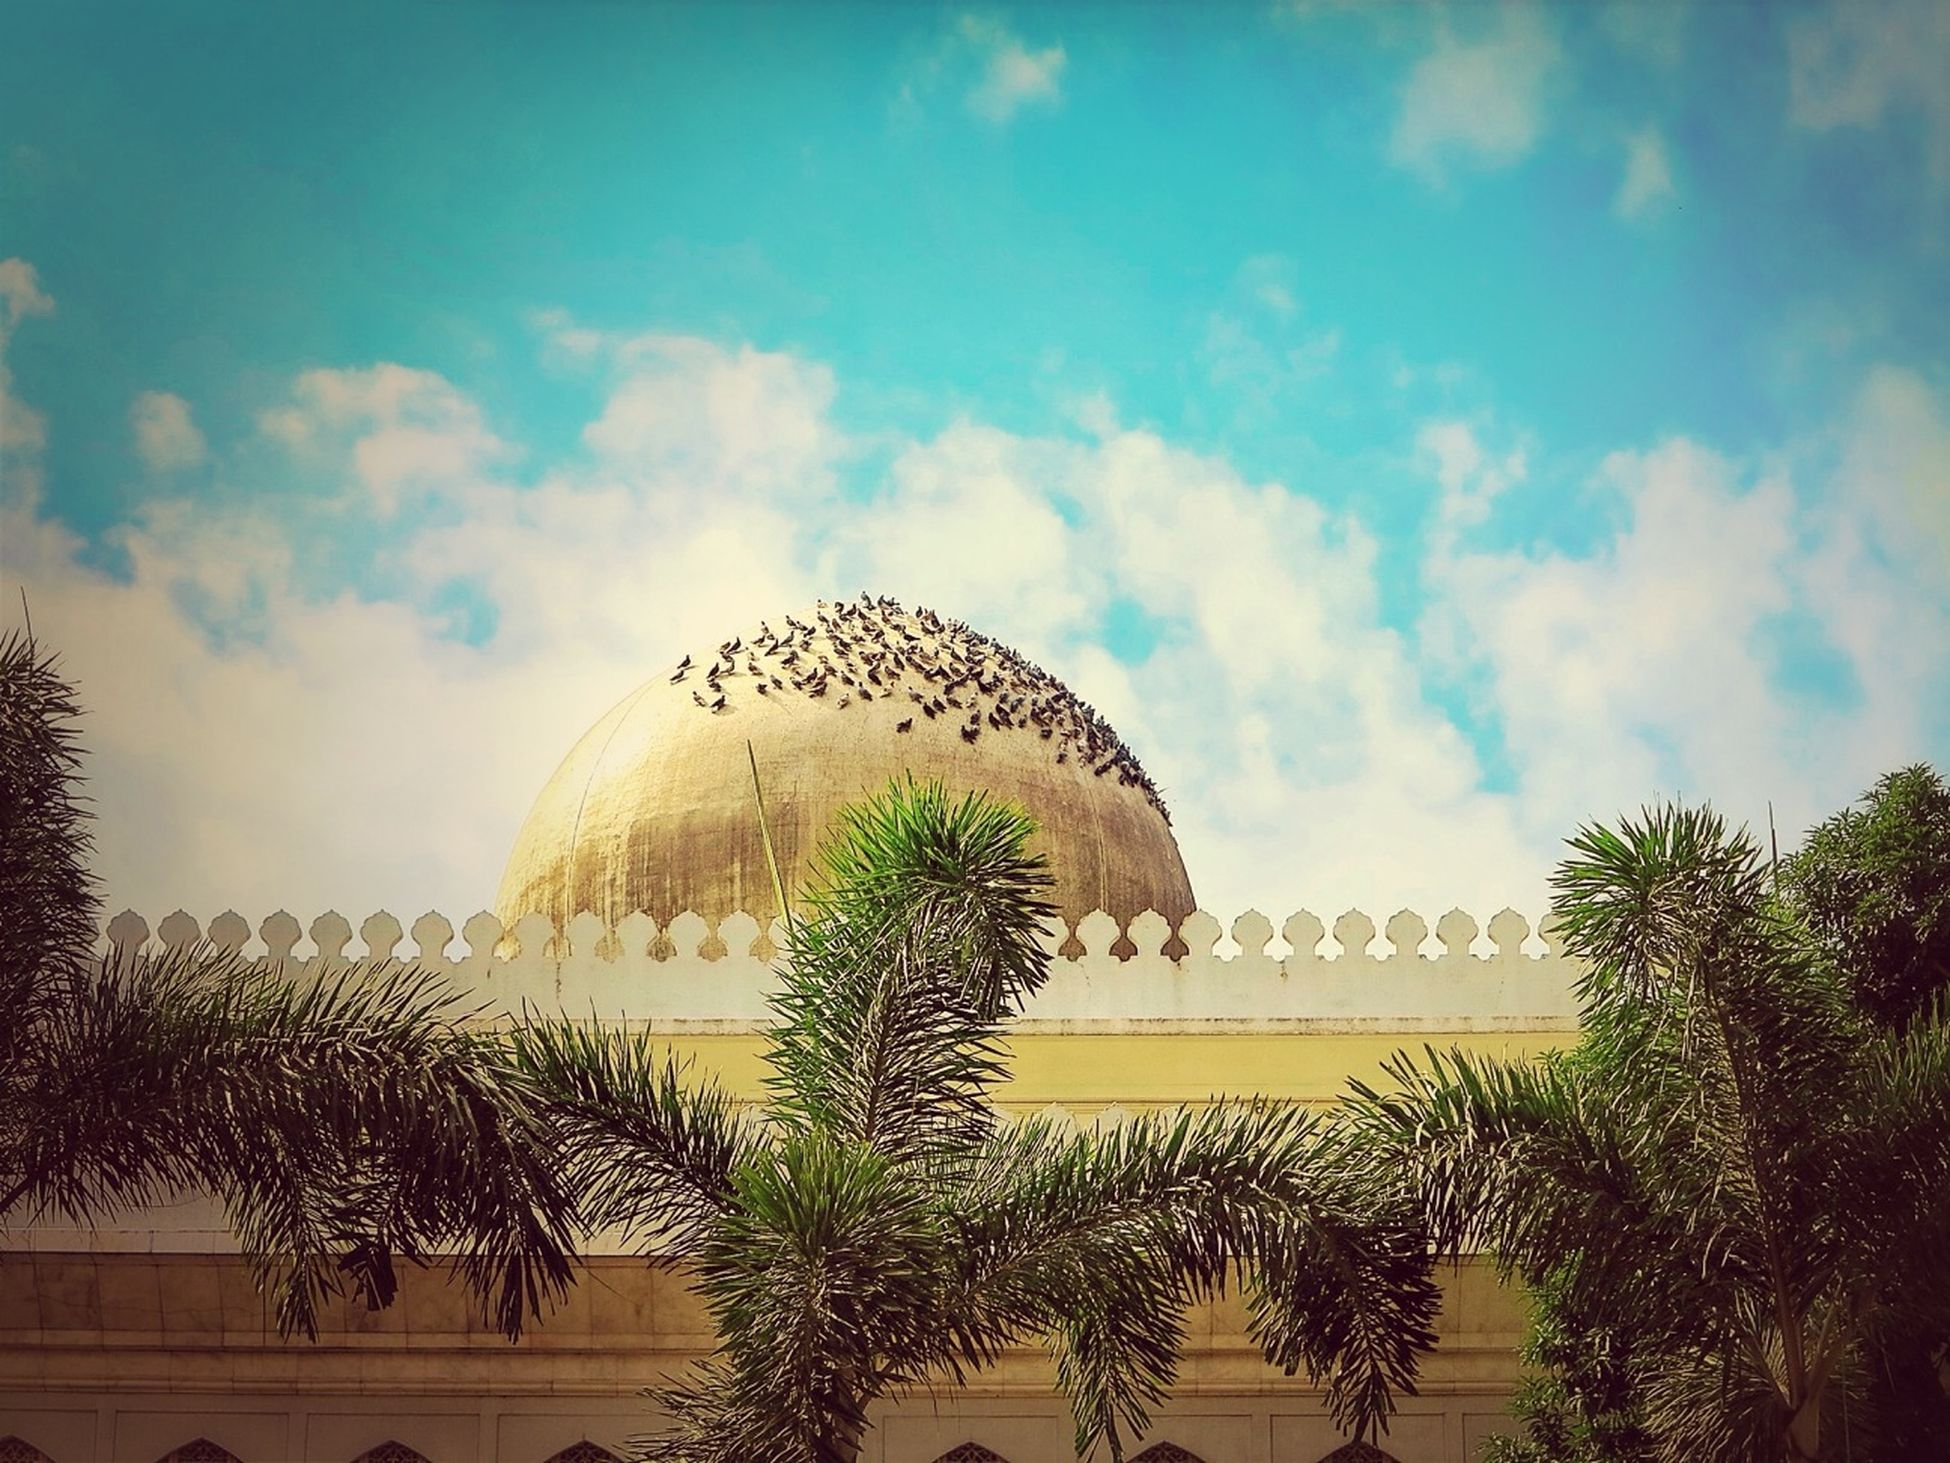 dome, architecture, sky, building exterior, cloud, outdoors, religion, built structure, place of worship, high section, travel destinations, low angle view, famous place, spirituality, tourism, famous place, religion, history, historic, international landmark